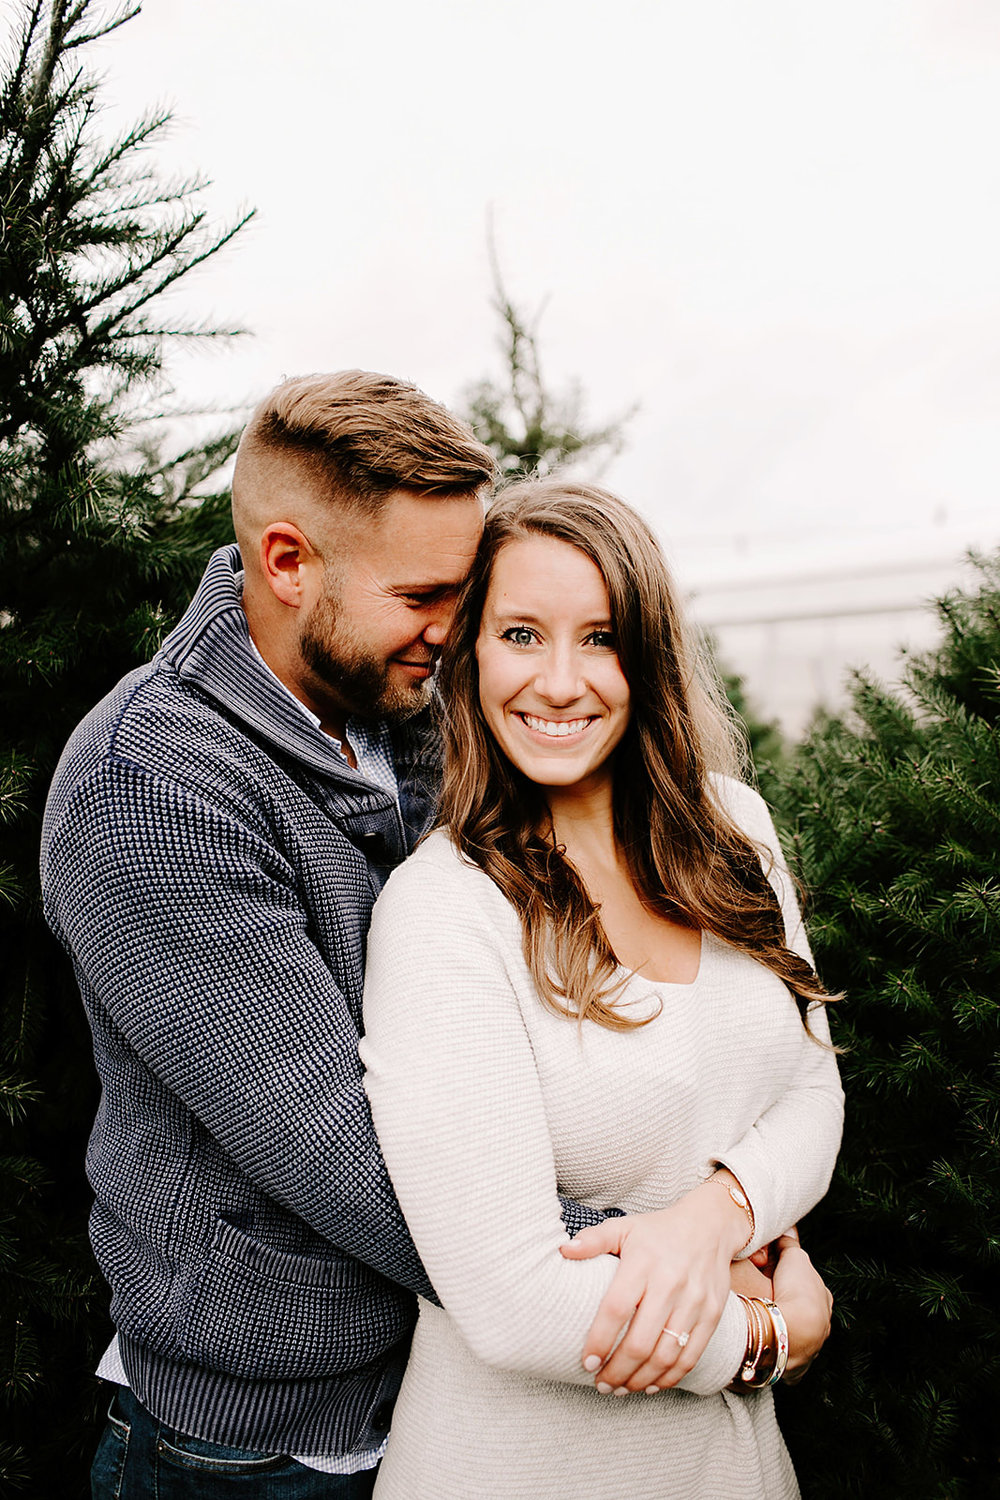 Holly and Michael Engagement Session in Noblesville Indiana by Emily Elyse Wehner Photography LLC-44.jpg